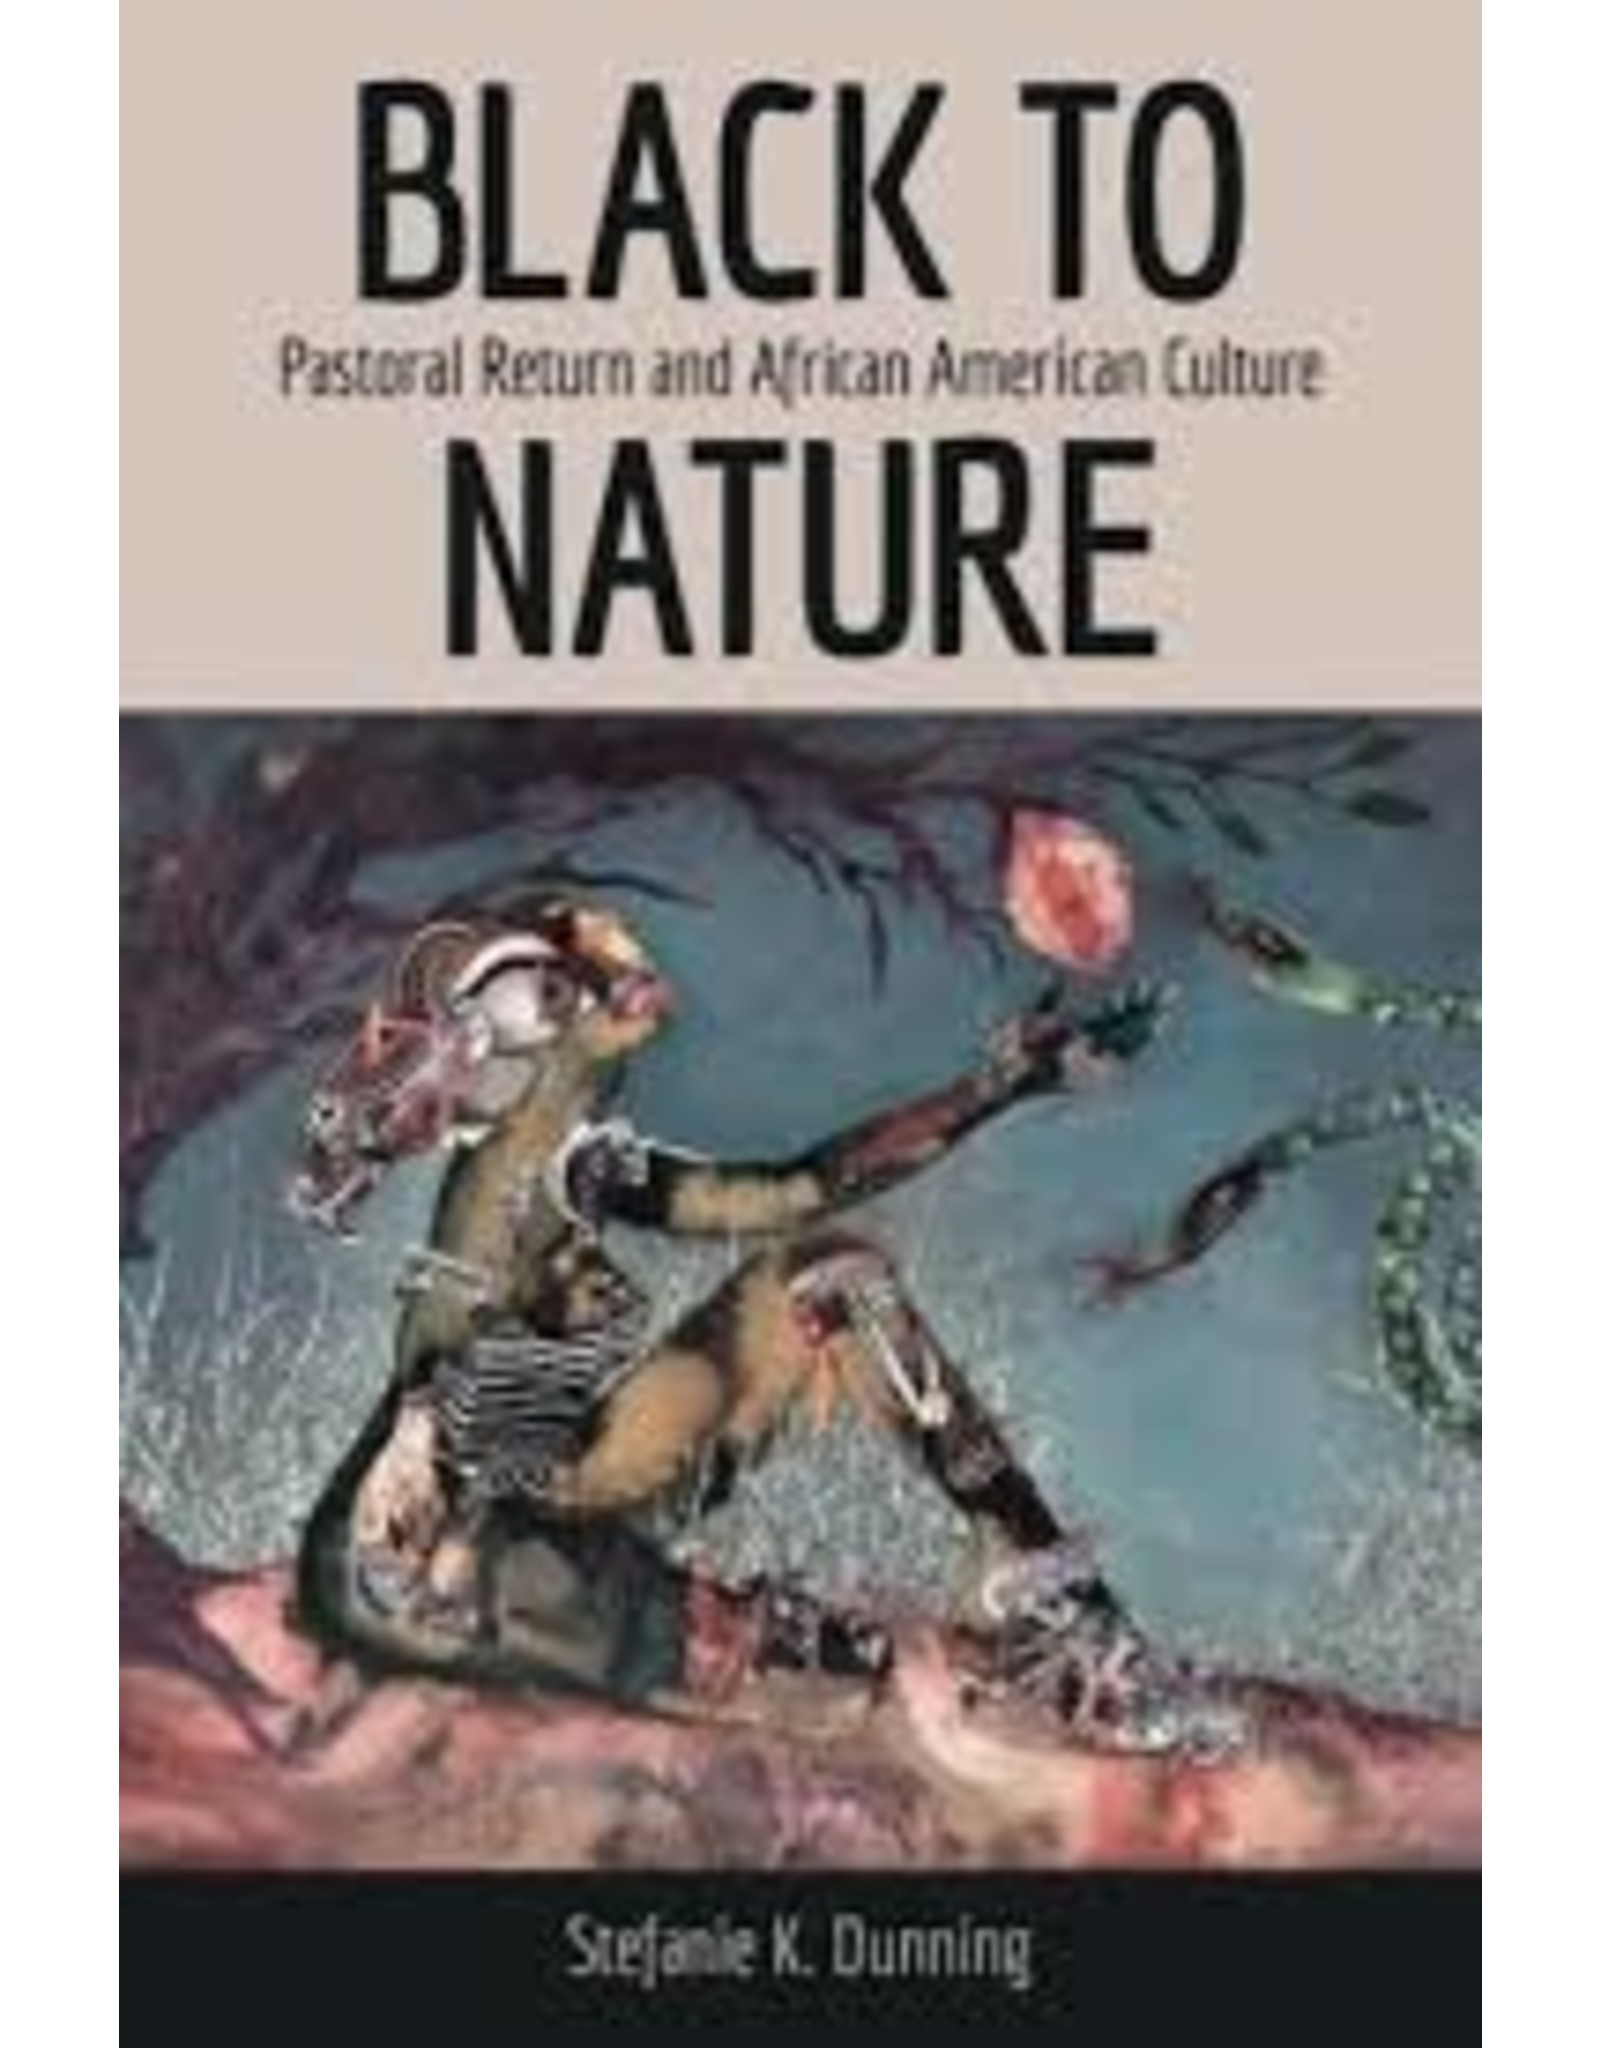 Books Black to Nature: Pastoral Return and African American Culture by Stefanie K. Dunning